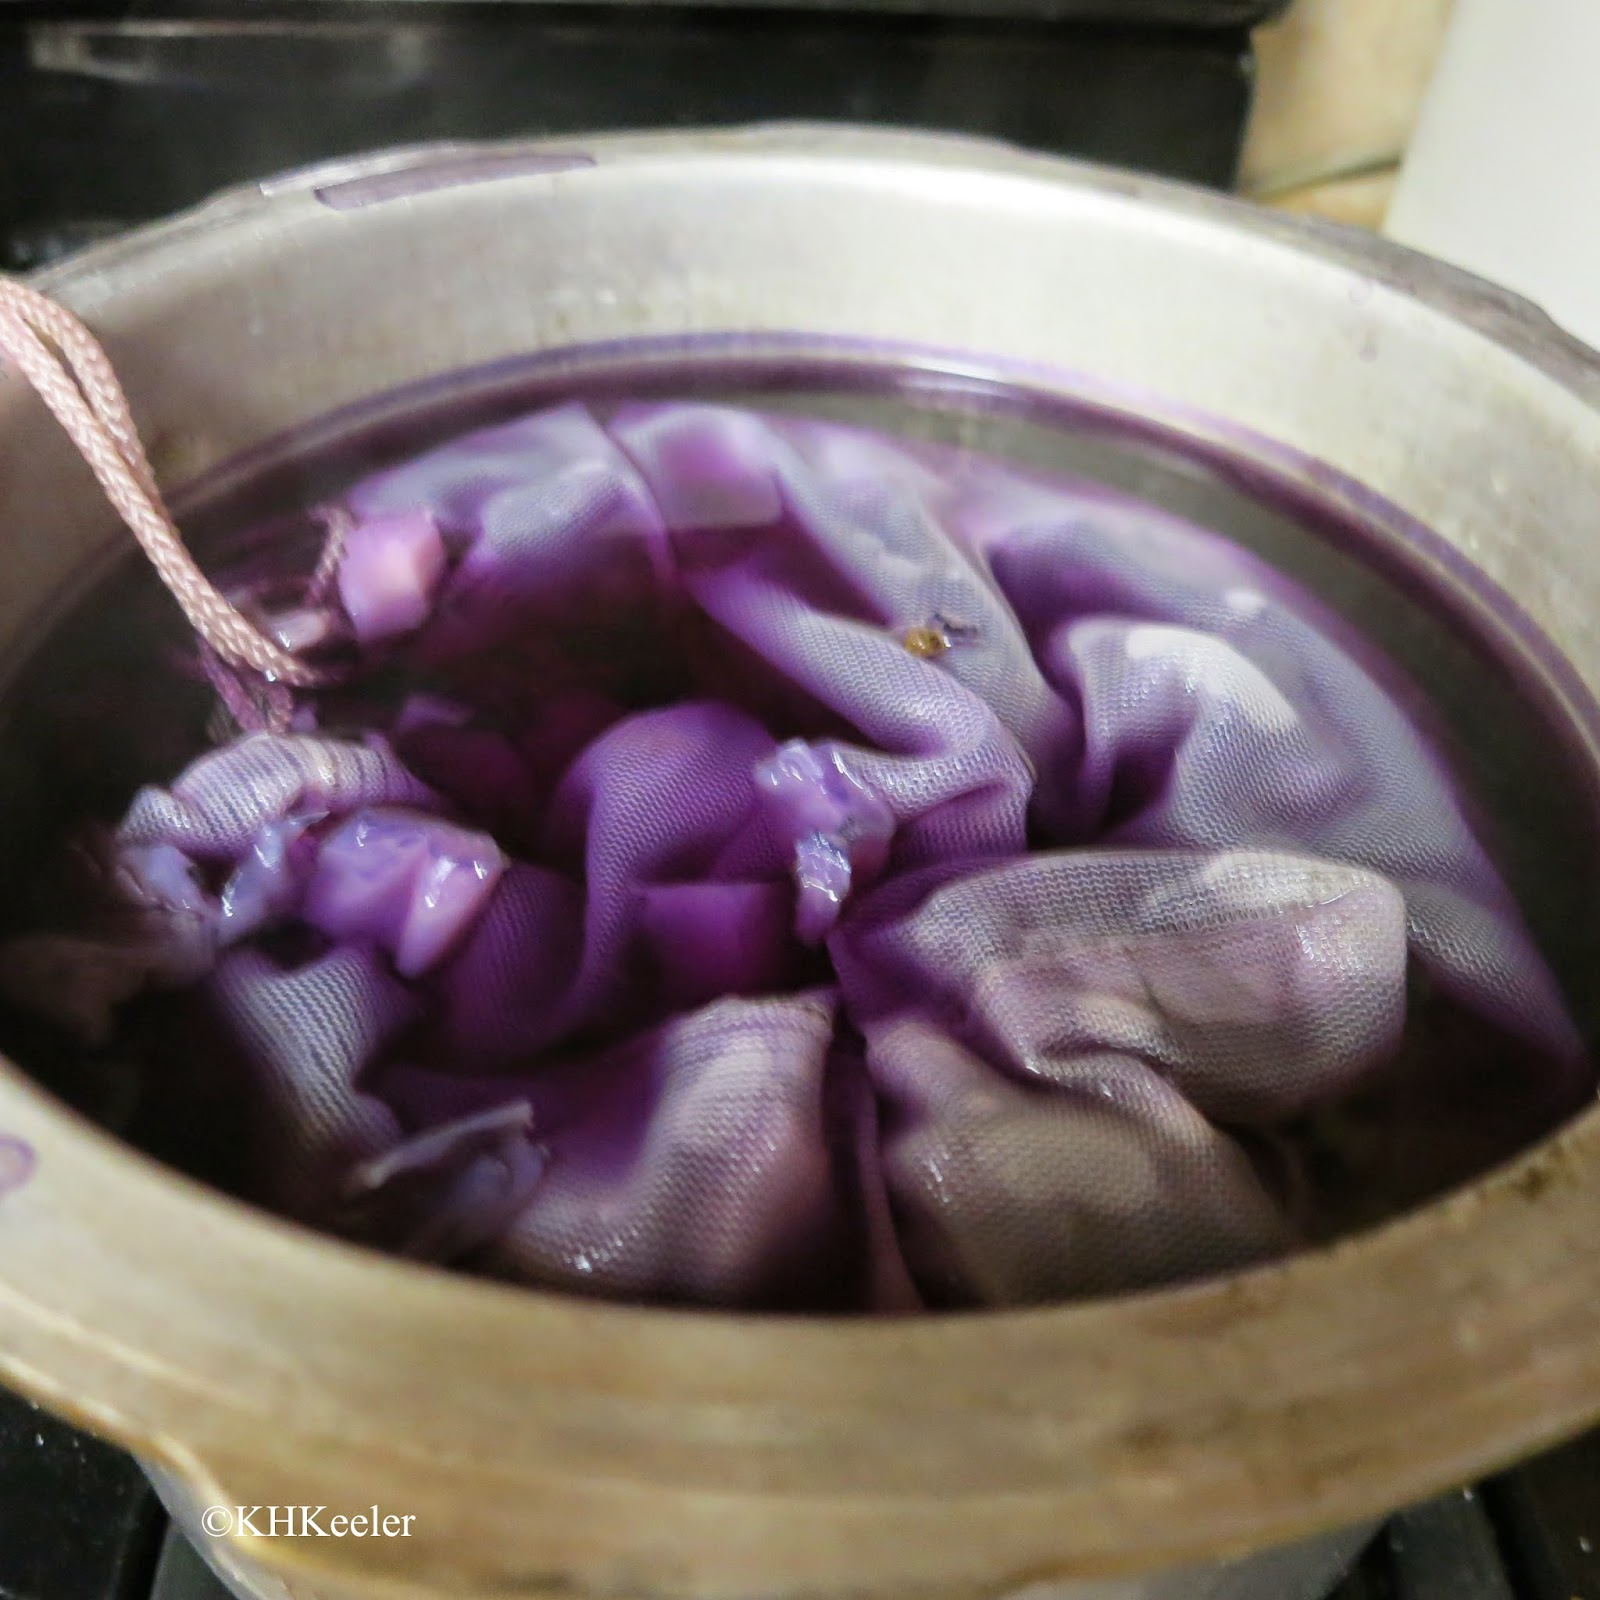 Dye bath with red cabbage.